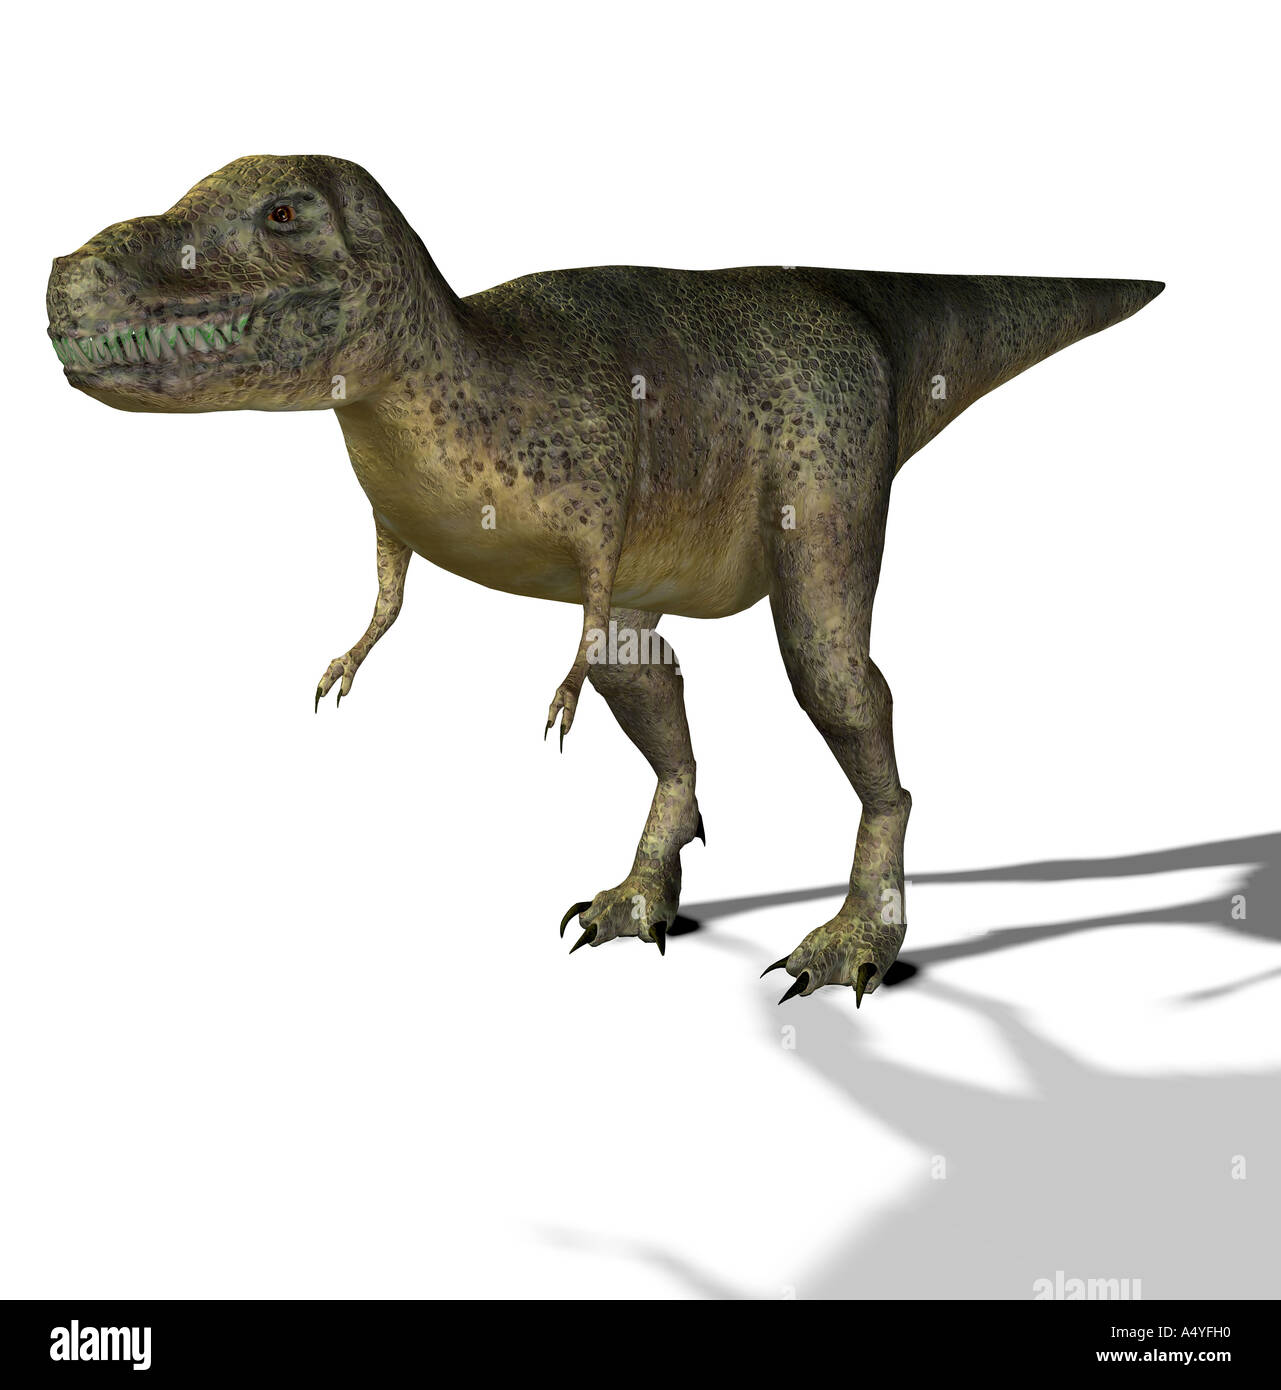 The Tyrannosaurus rex has its name of king of the Tyrannenechsen, in the Cretaceous period lived and a height ofStock Photo